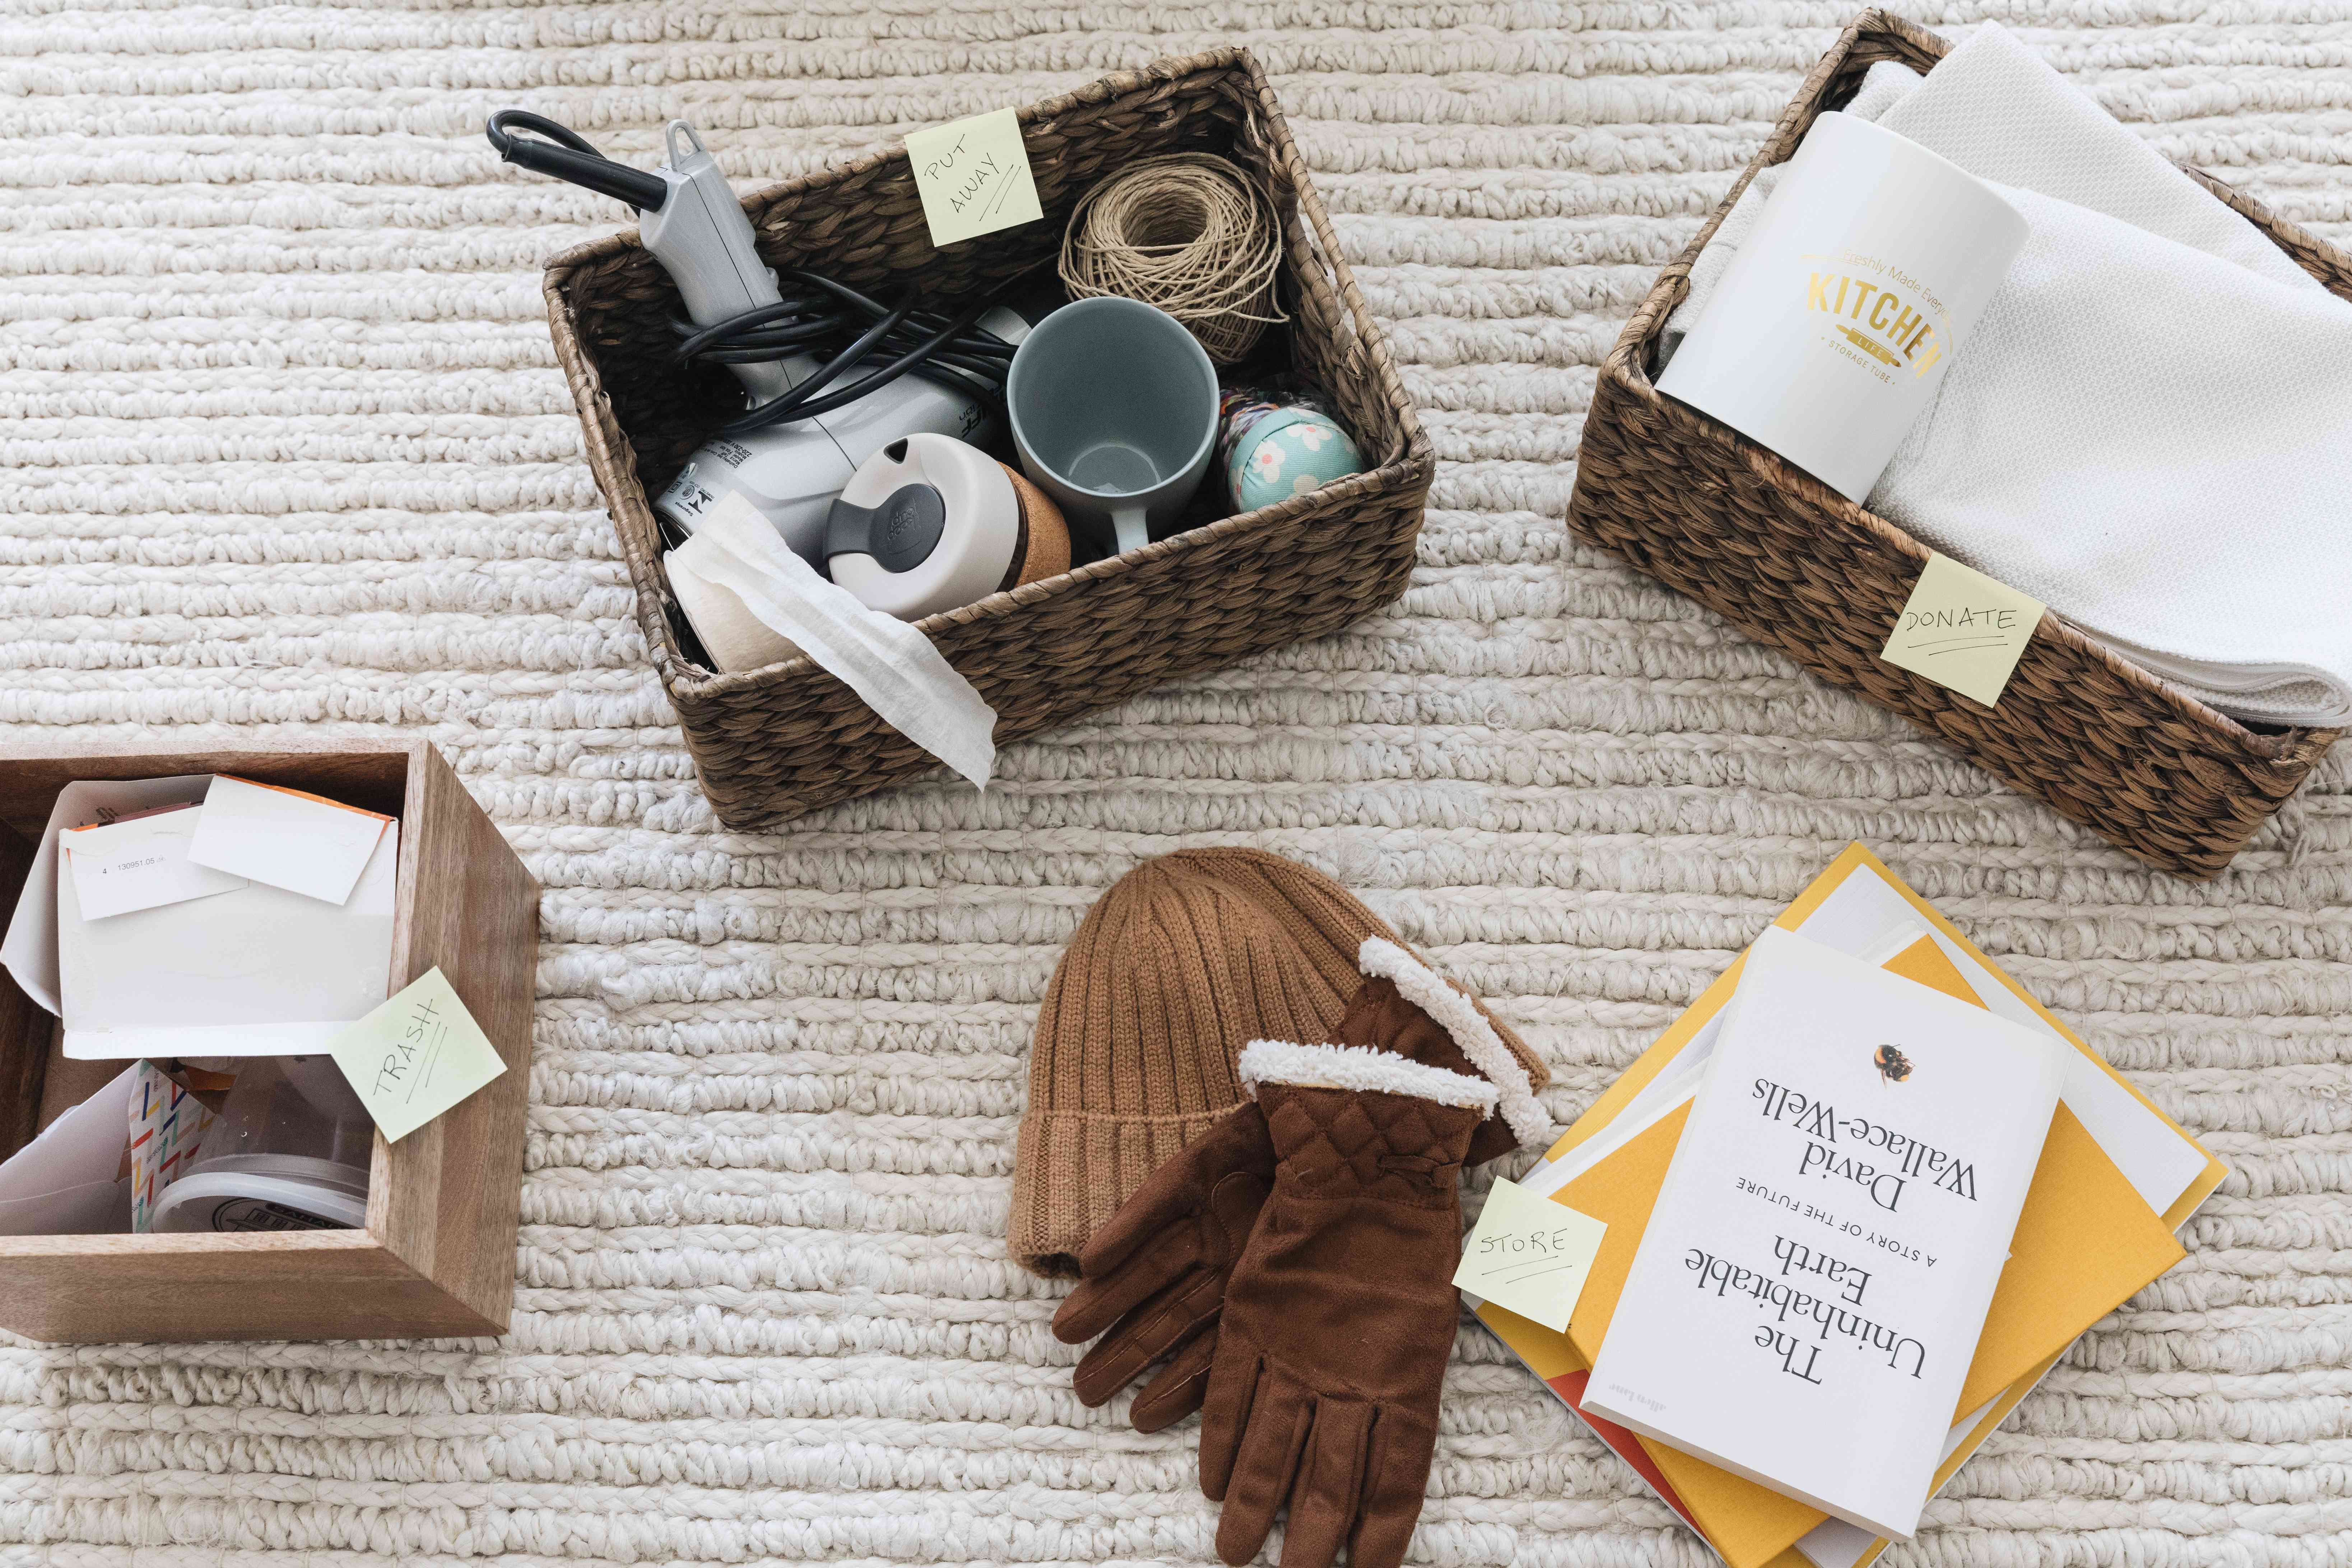 Belongings sorted into four categories for spring-cleaning process